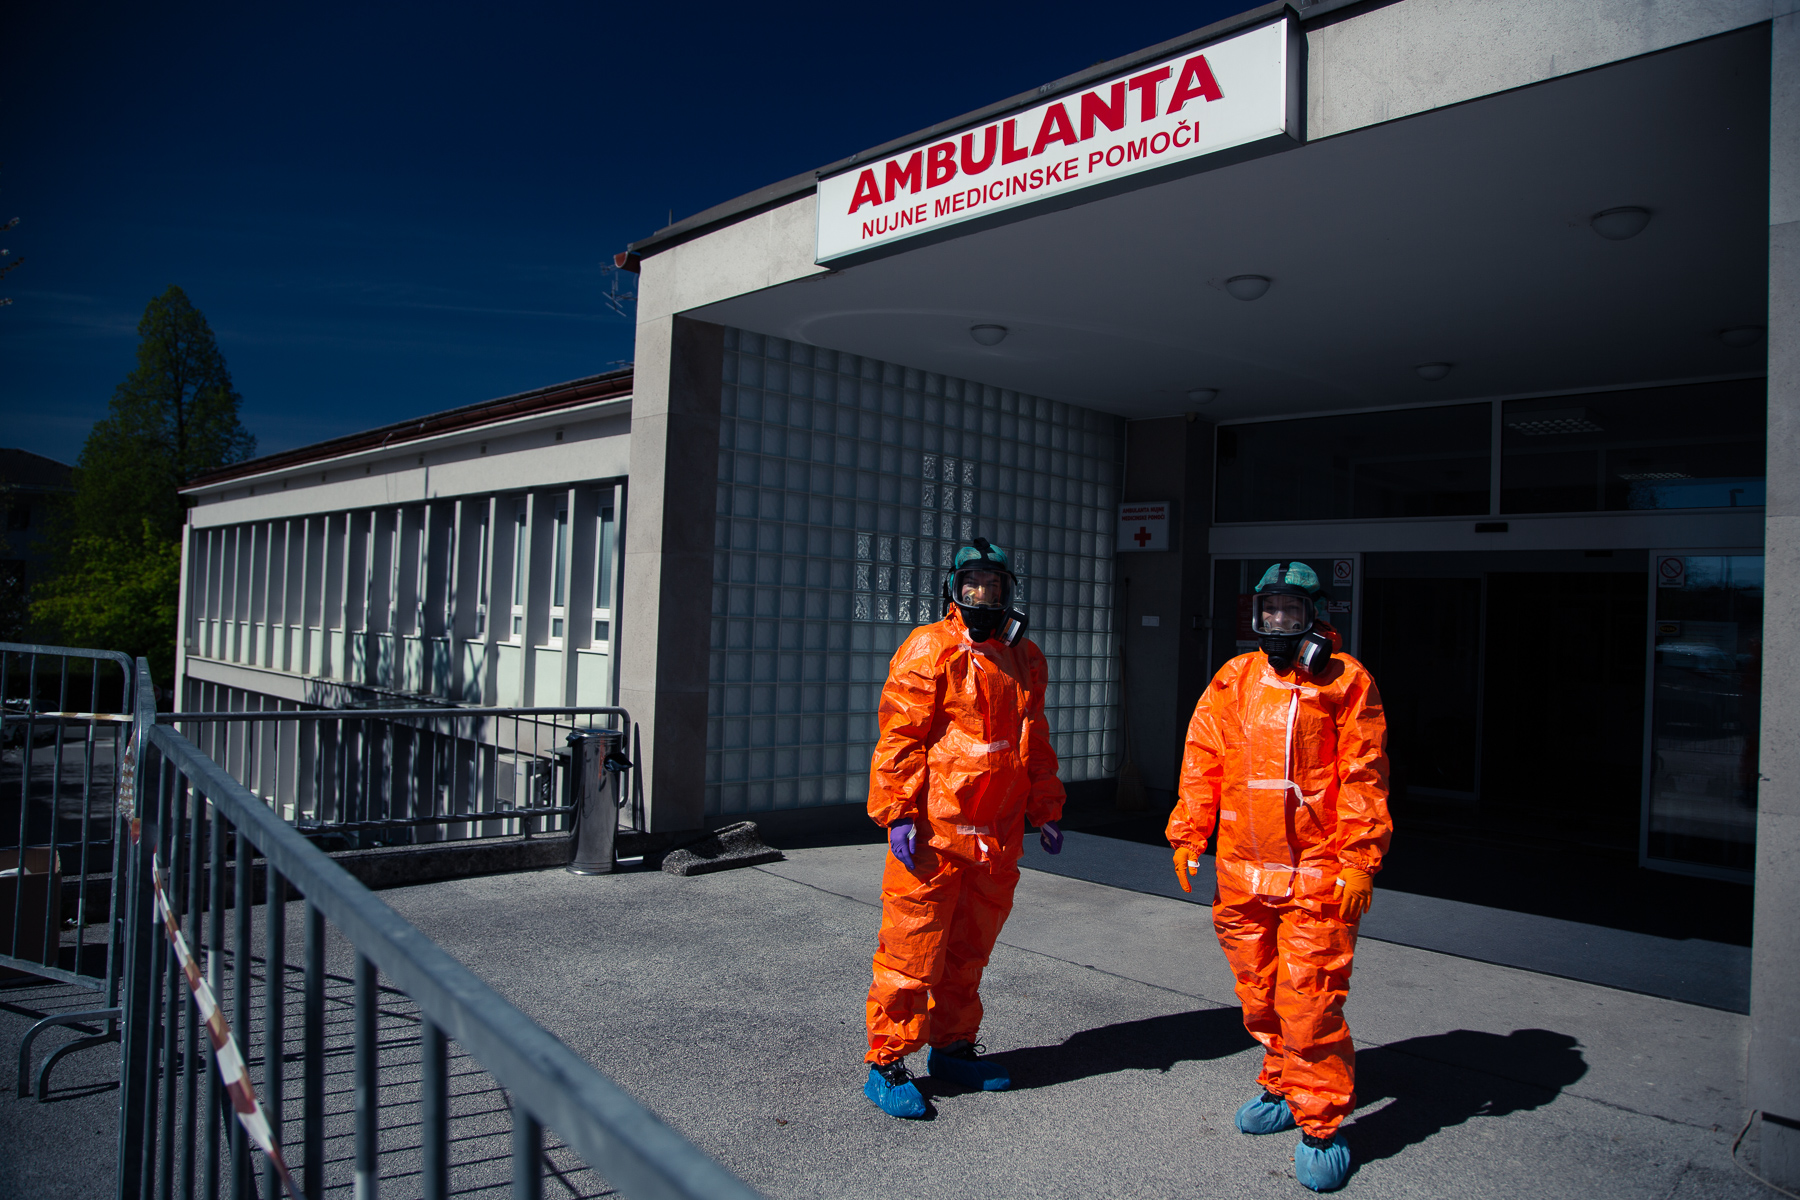 Medical personnel in hazmat suits wait at the COVID-19 testing site in Bled, Slovenia, for patients to arrive at a scheduled hour on April 16, 2020. Given the low frequency of tests in this small town, famous for its world famous tourist attraction Lake Bled, this system was put in place in order to save on protective equipment that needs to be discarded after each use.